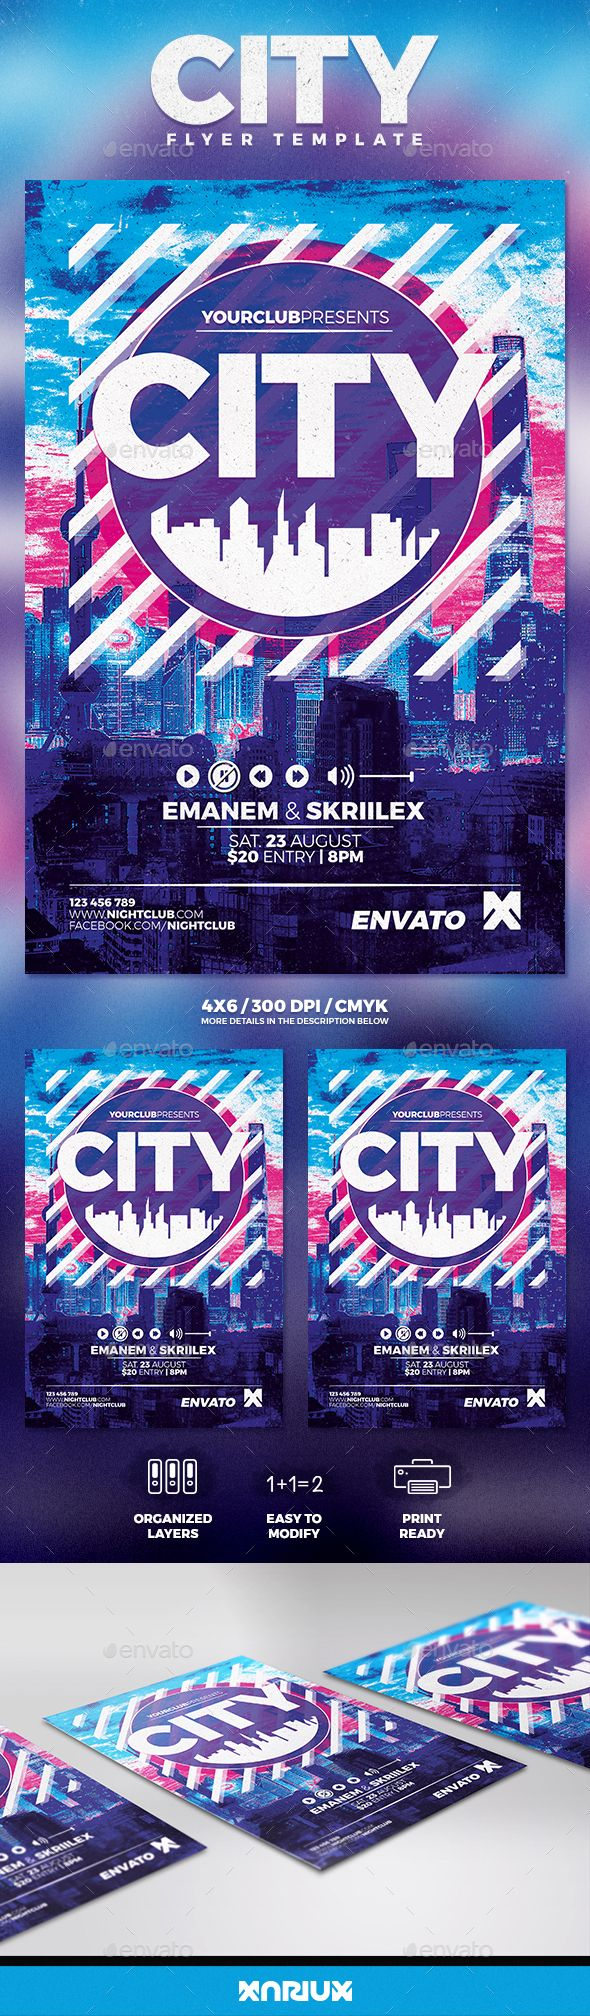 City Party Flyer